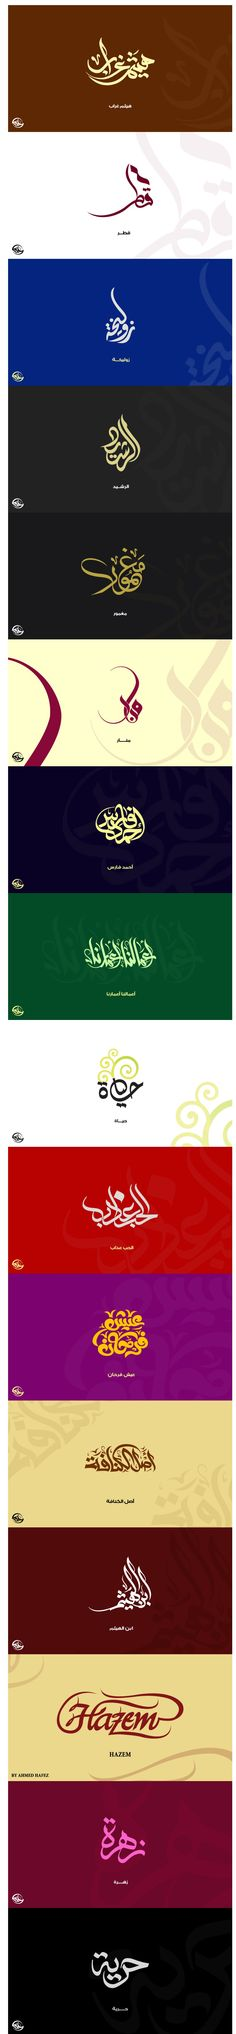 islamic-Arabic-Calligraphy-logo-design-example-8